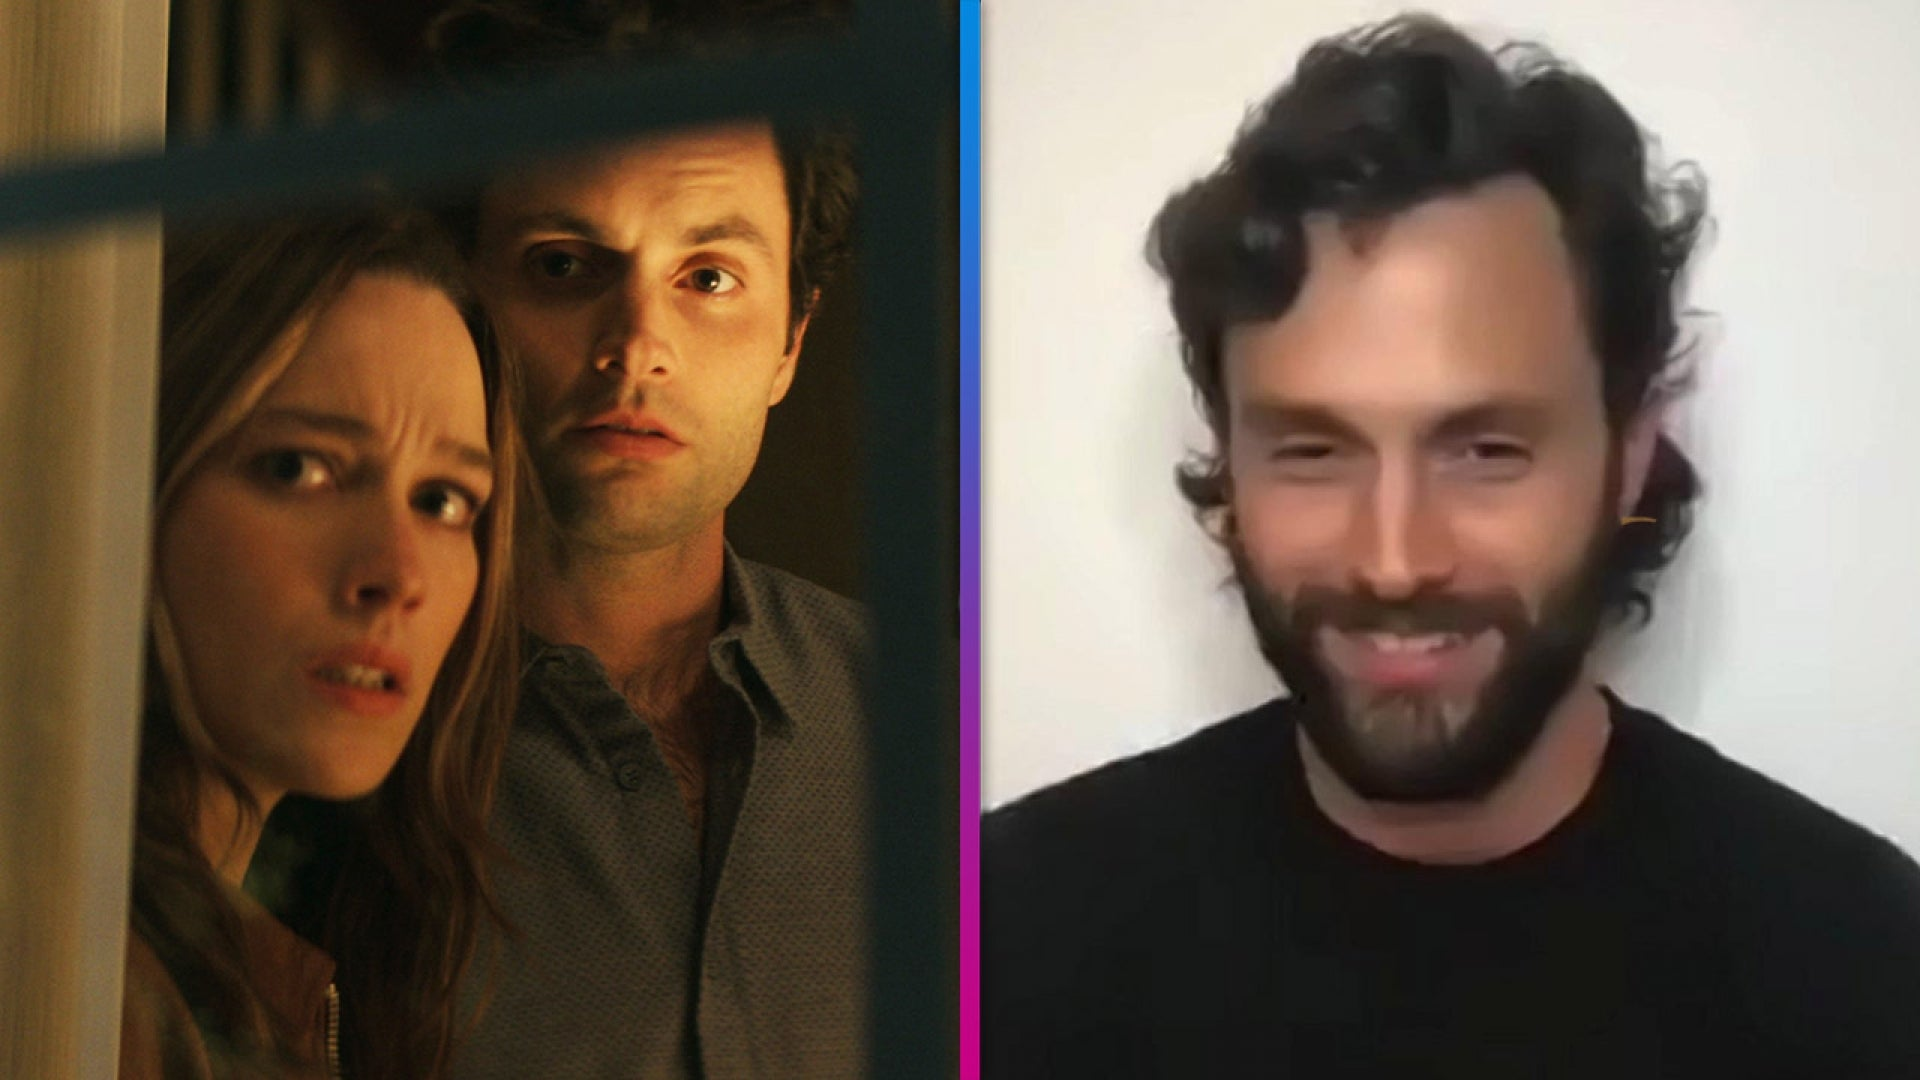 'You' Season 3: Penn Badgely Reacts to Deadliest Twists and Season 4 Plans (Exclusive)